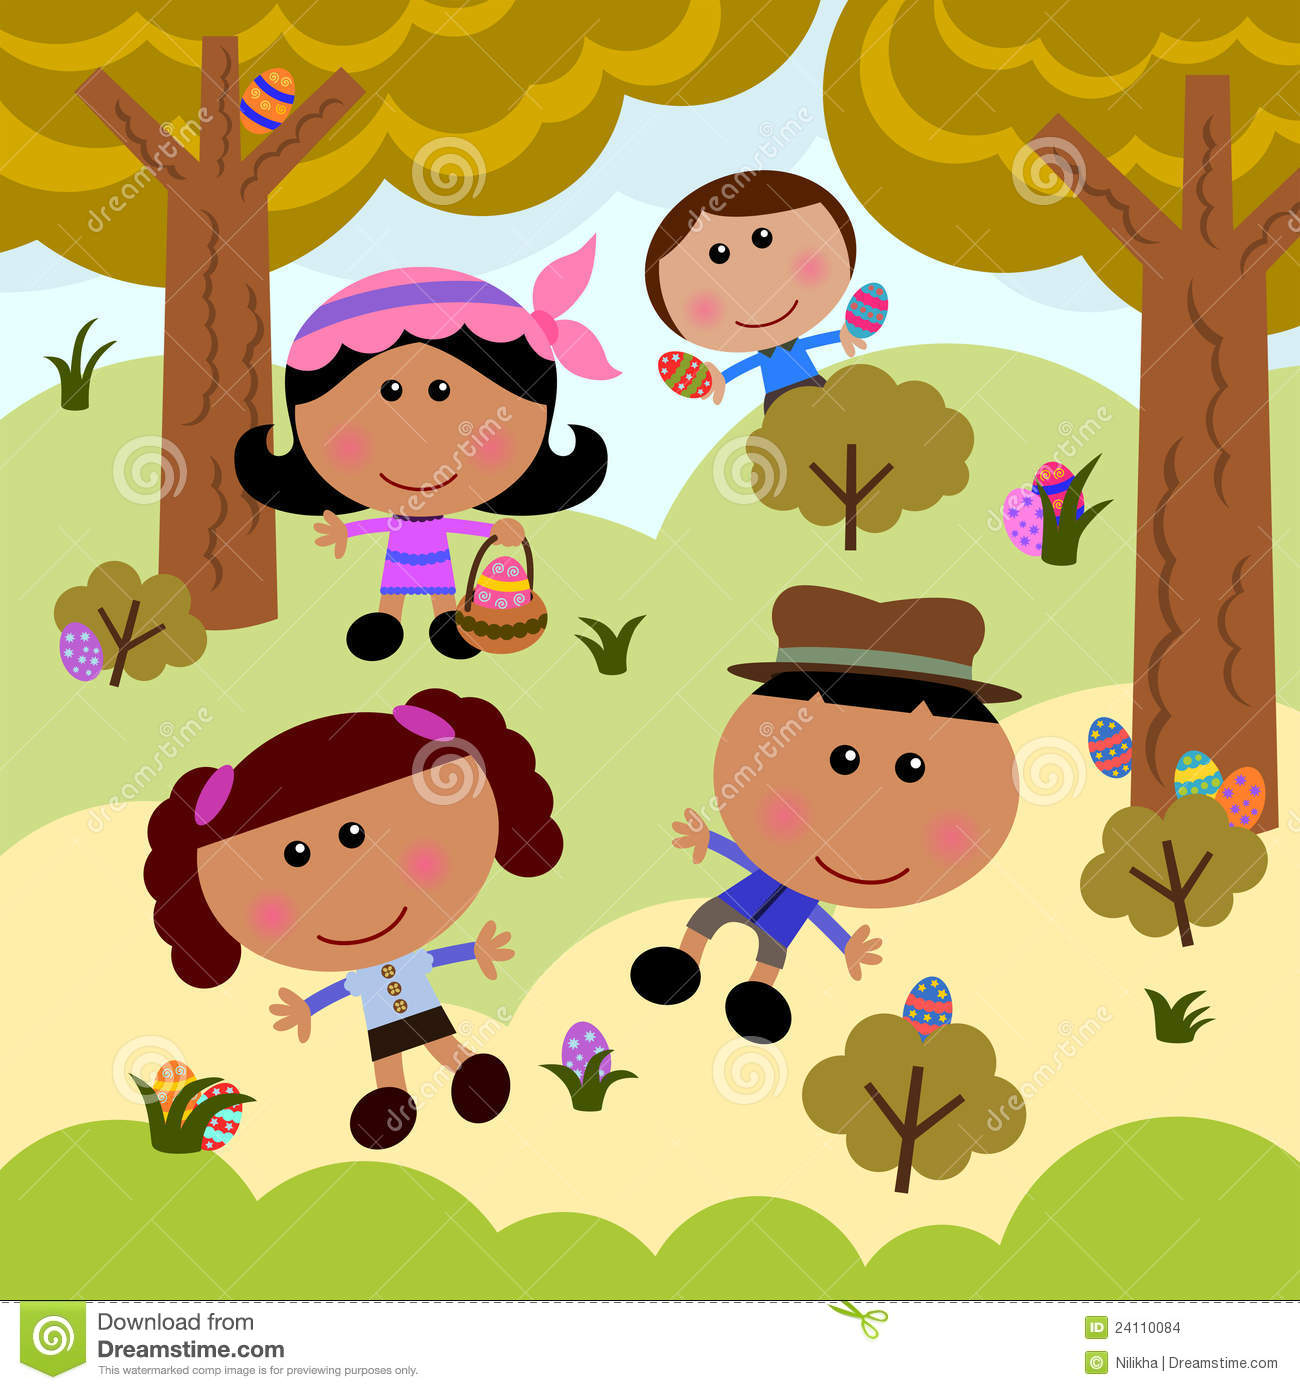 Easter Egg Hunt Stock Images - Image: 24110084 banner free library